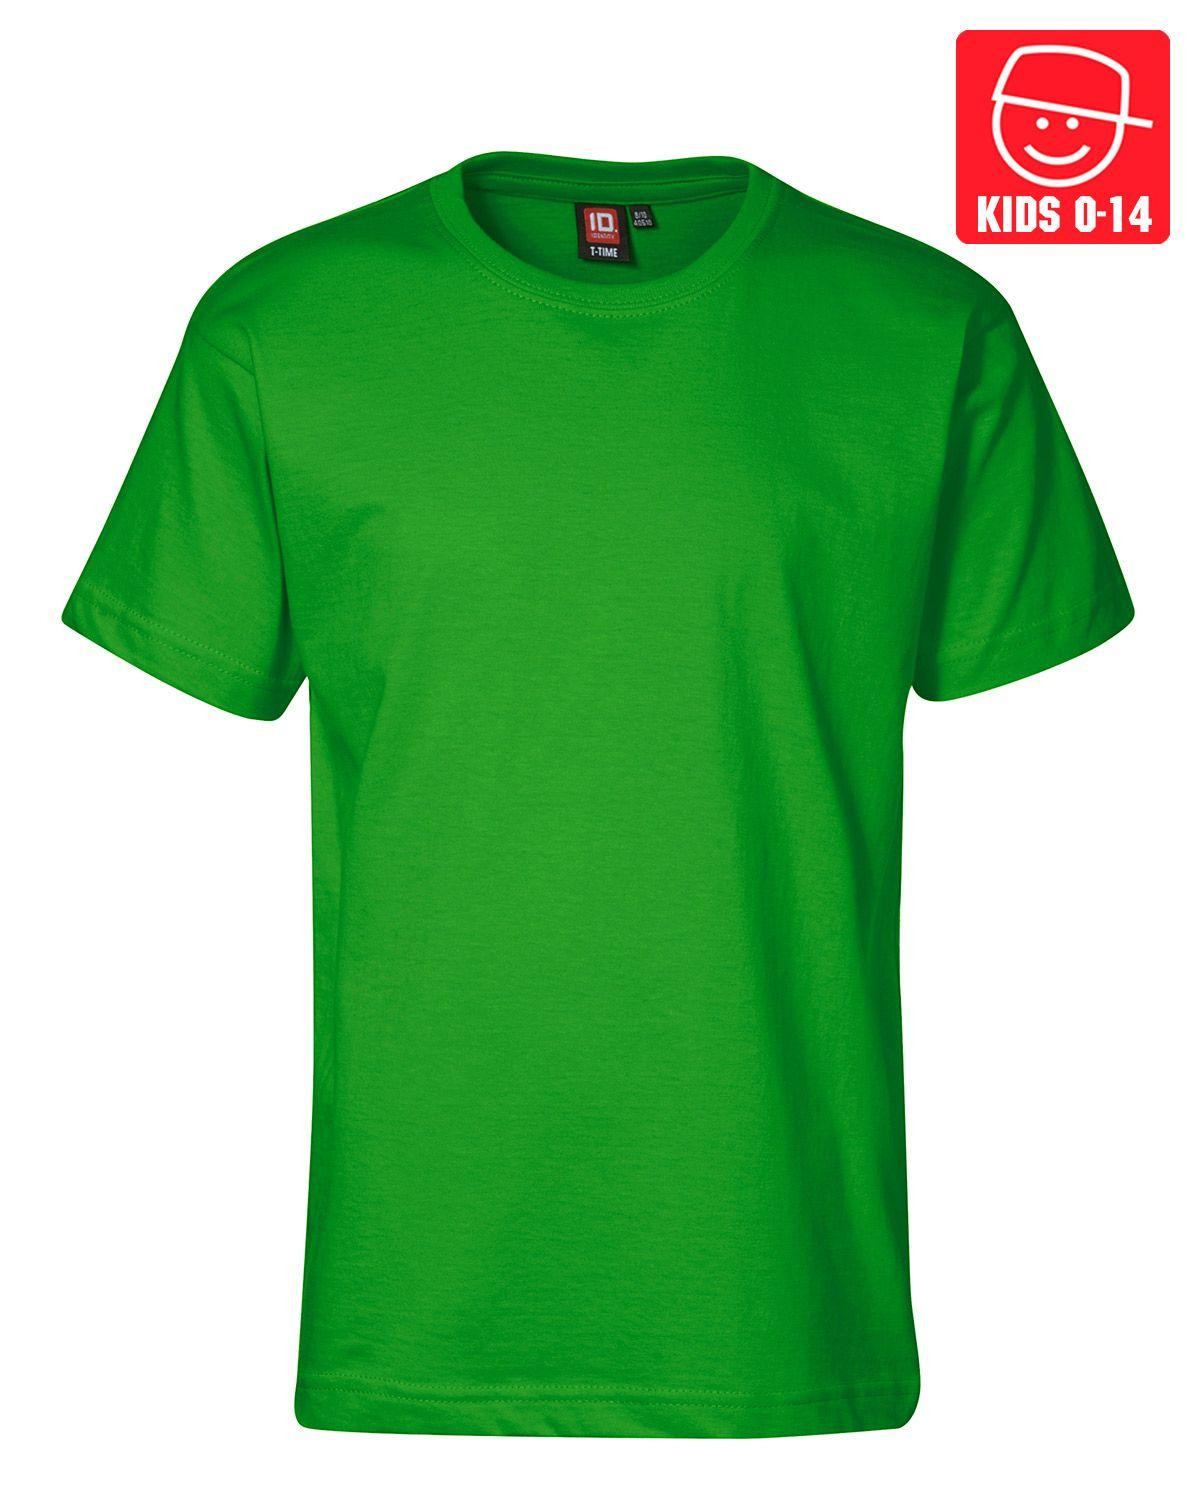 Image of   ID T-TIME T-shirt (Apple, 158)